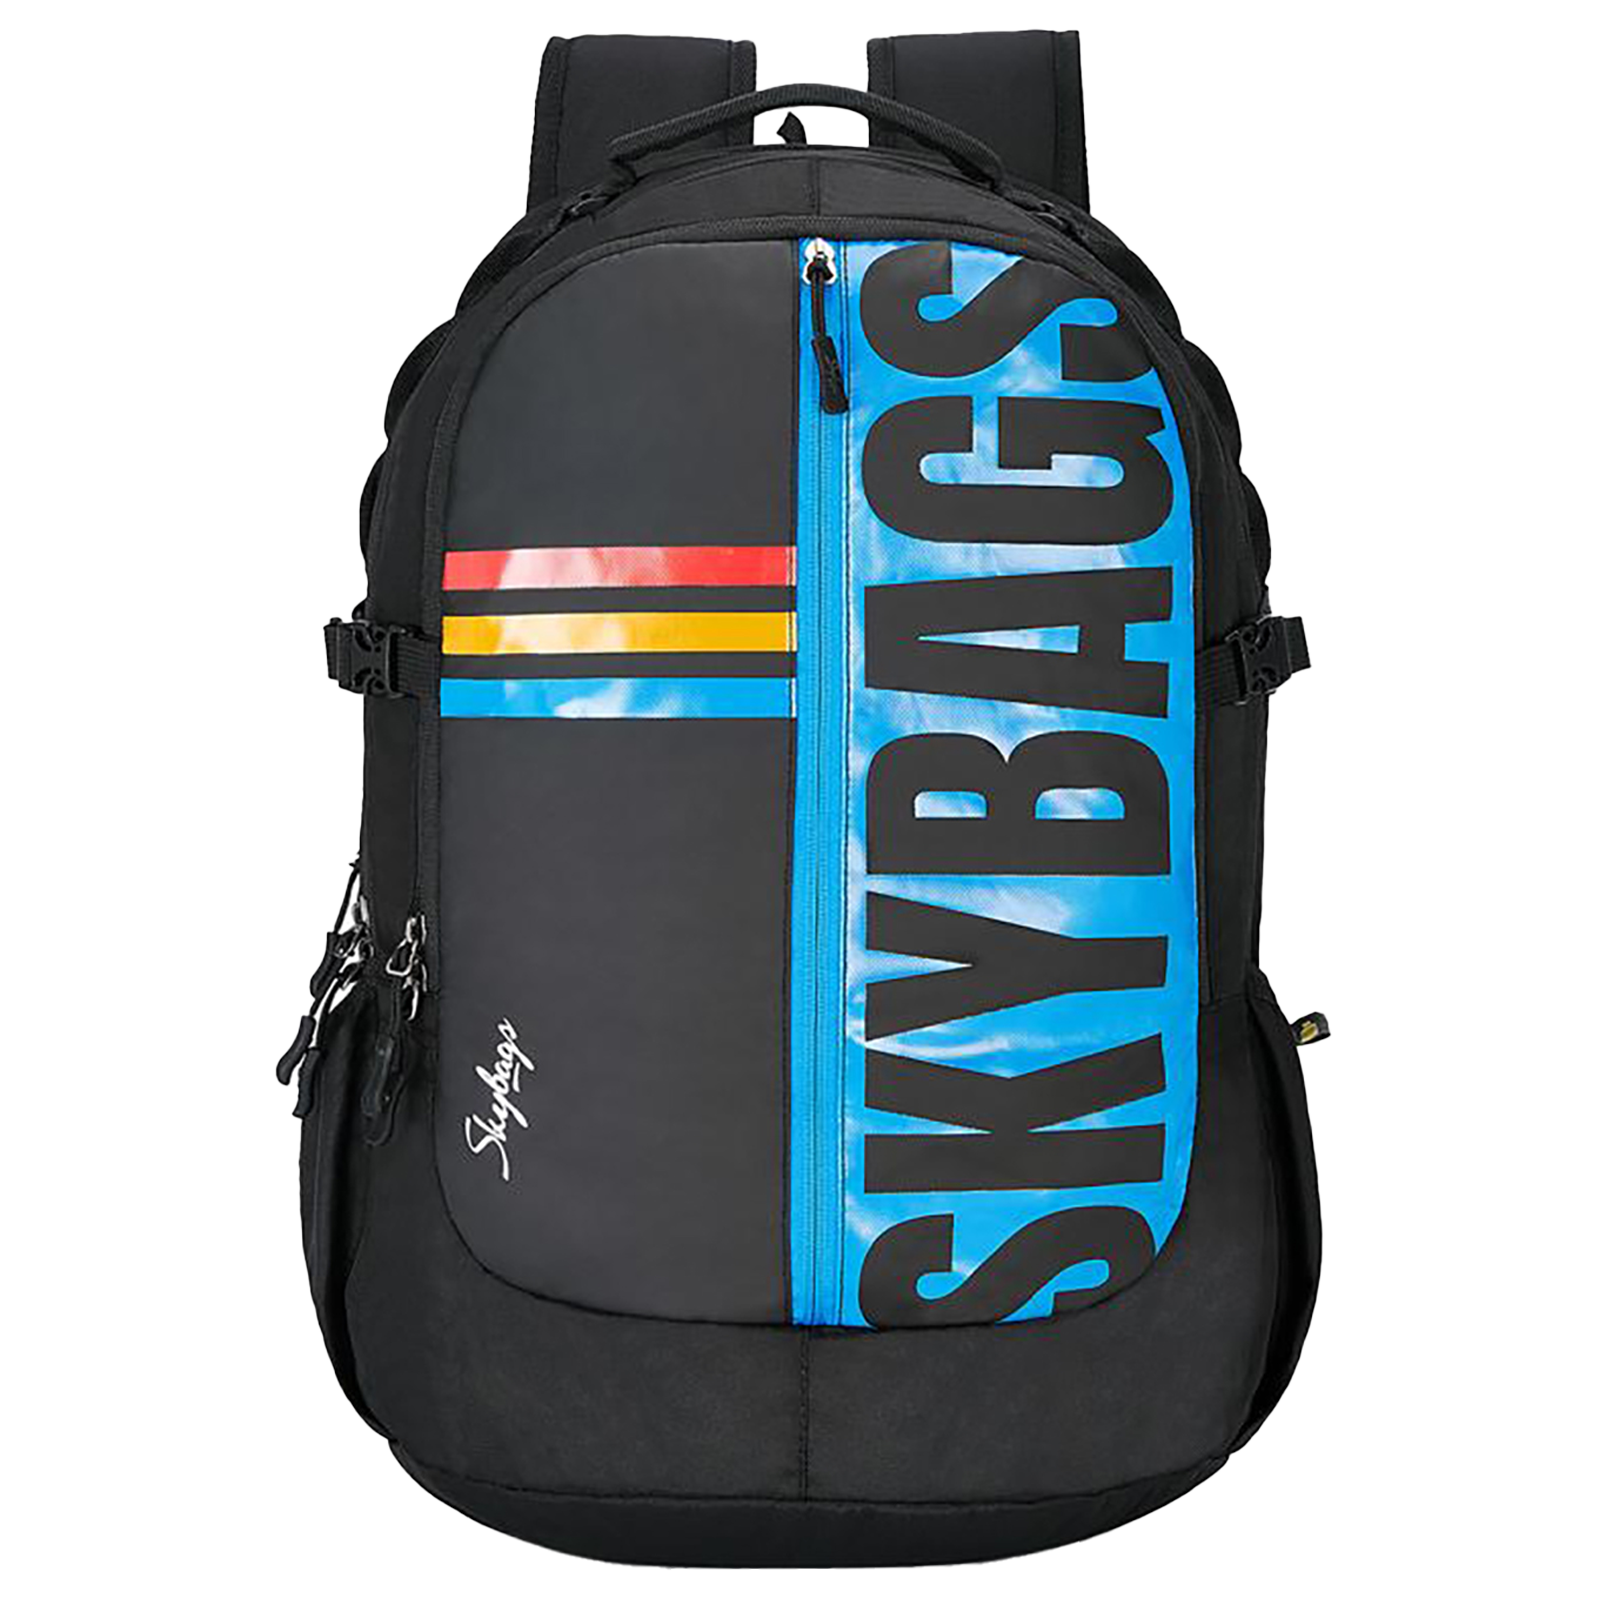 Sky Bags Strider Plus 04 30 Litres Gucci Laptop Backpack (Rain Cover, BPSTRP4HBLK, Black)_1